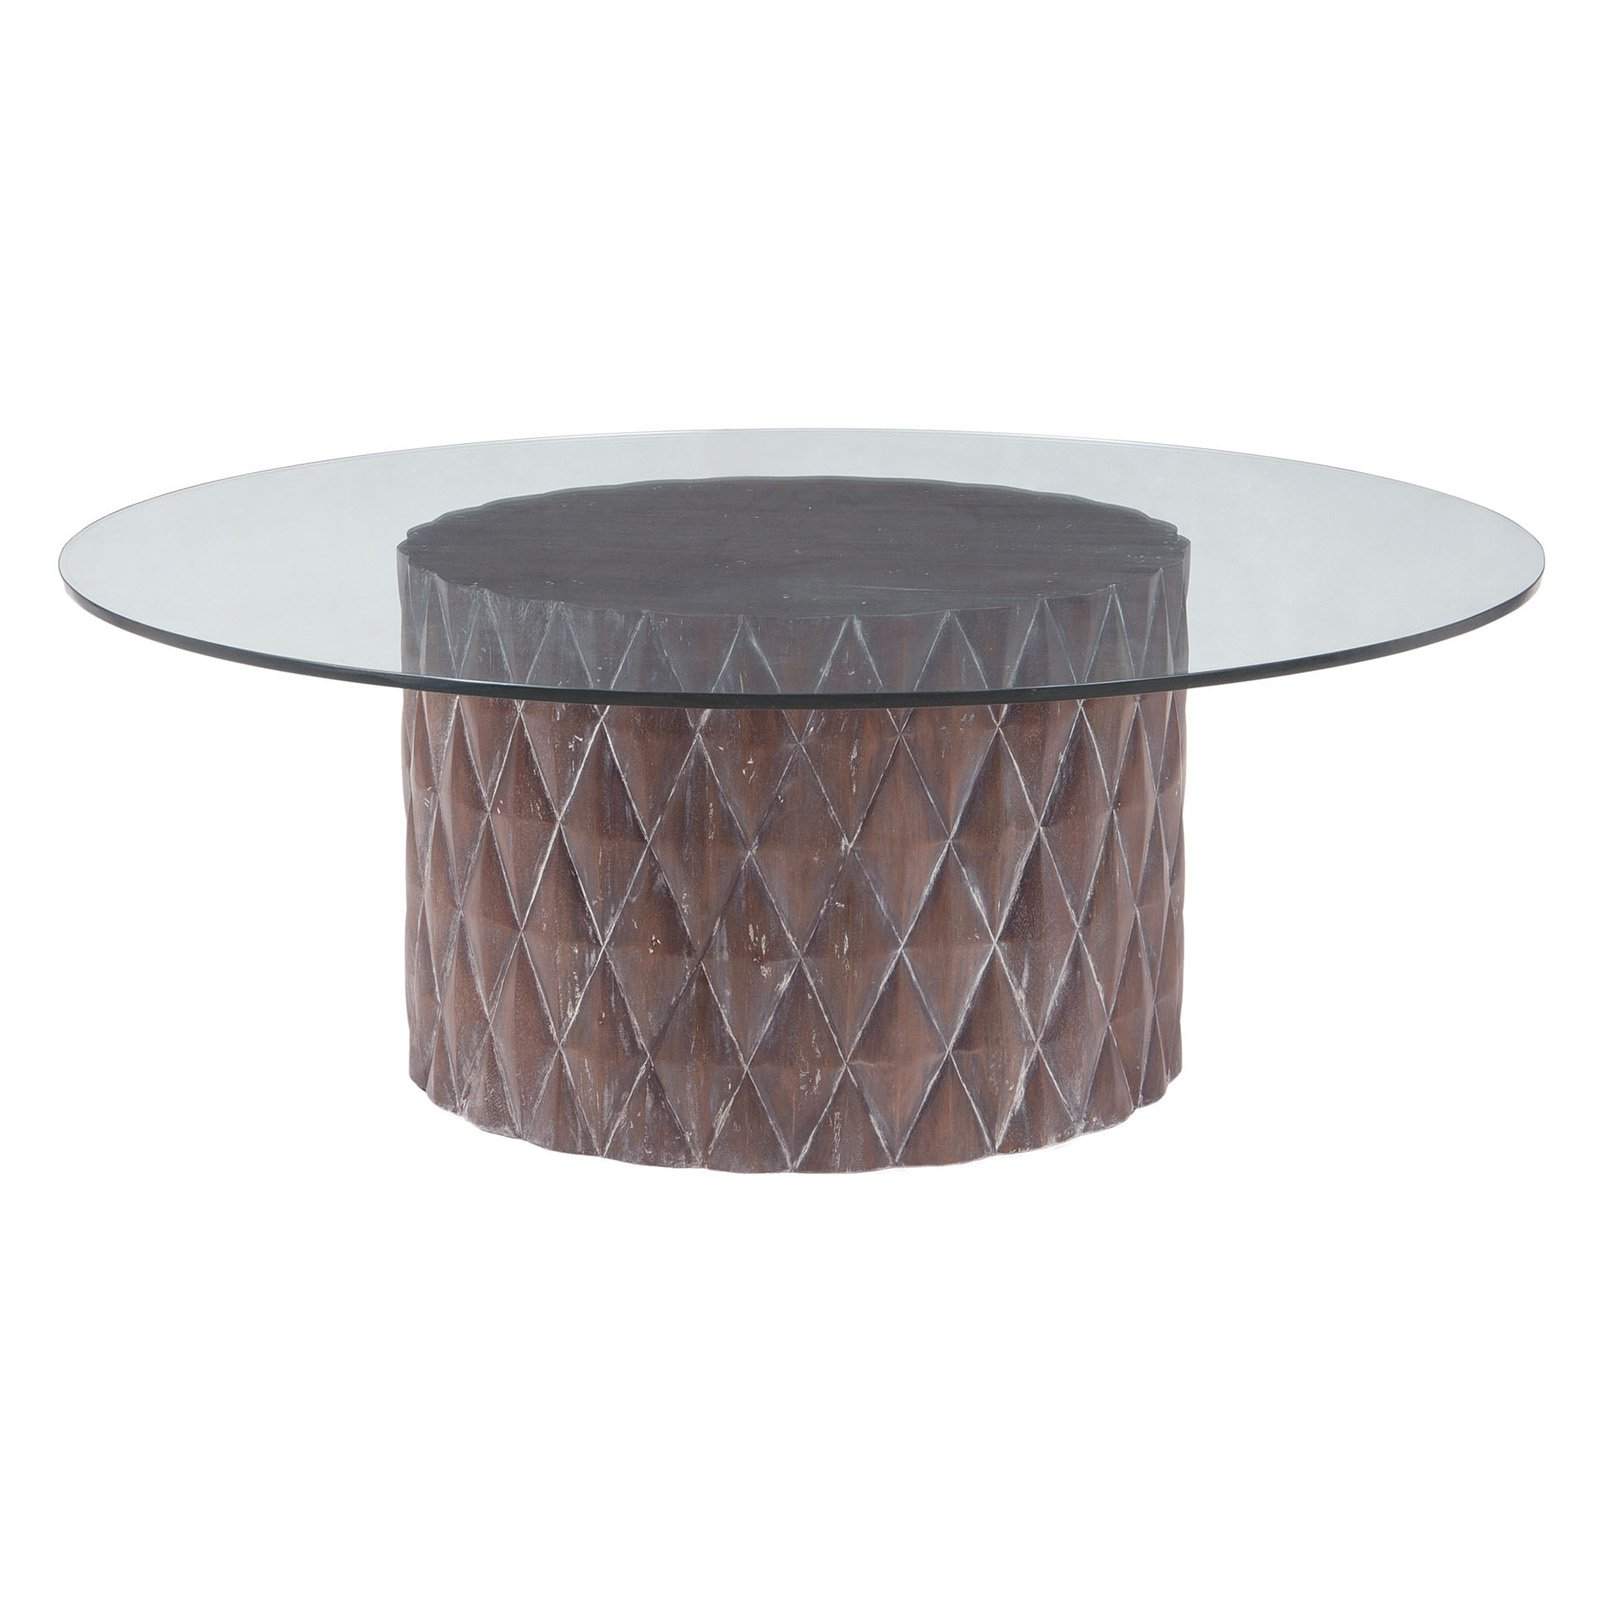 Dimond Home Coco Coffee Table by Dimond Home